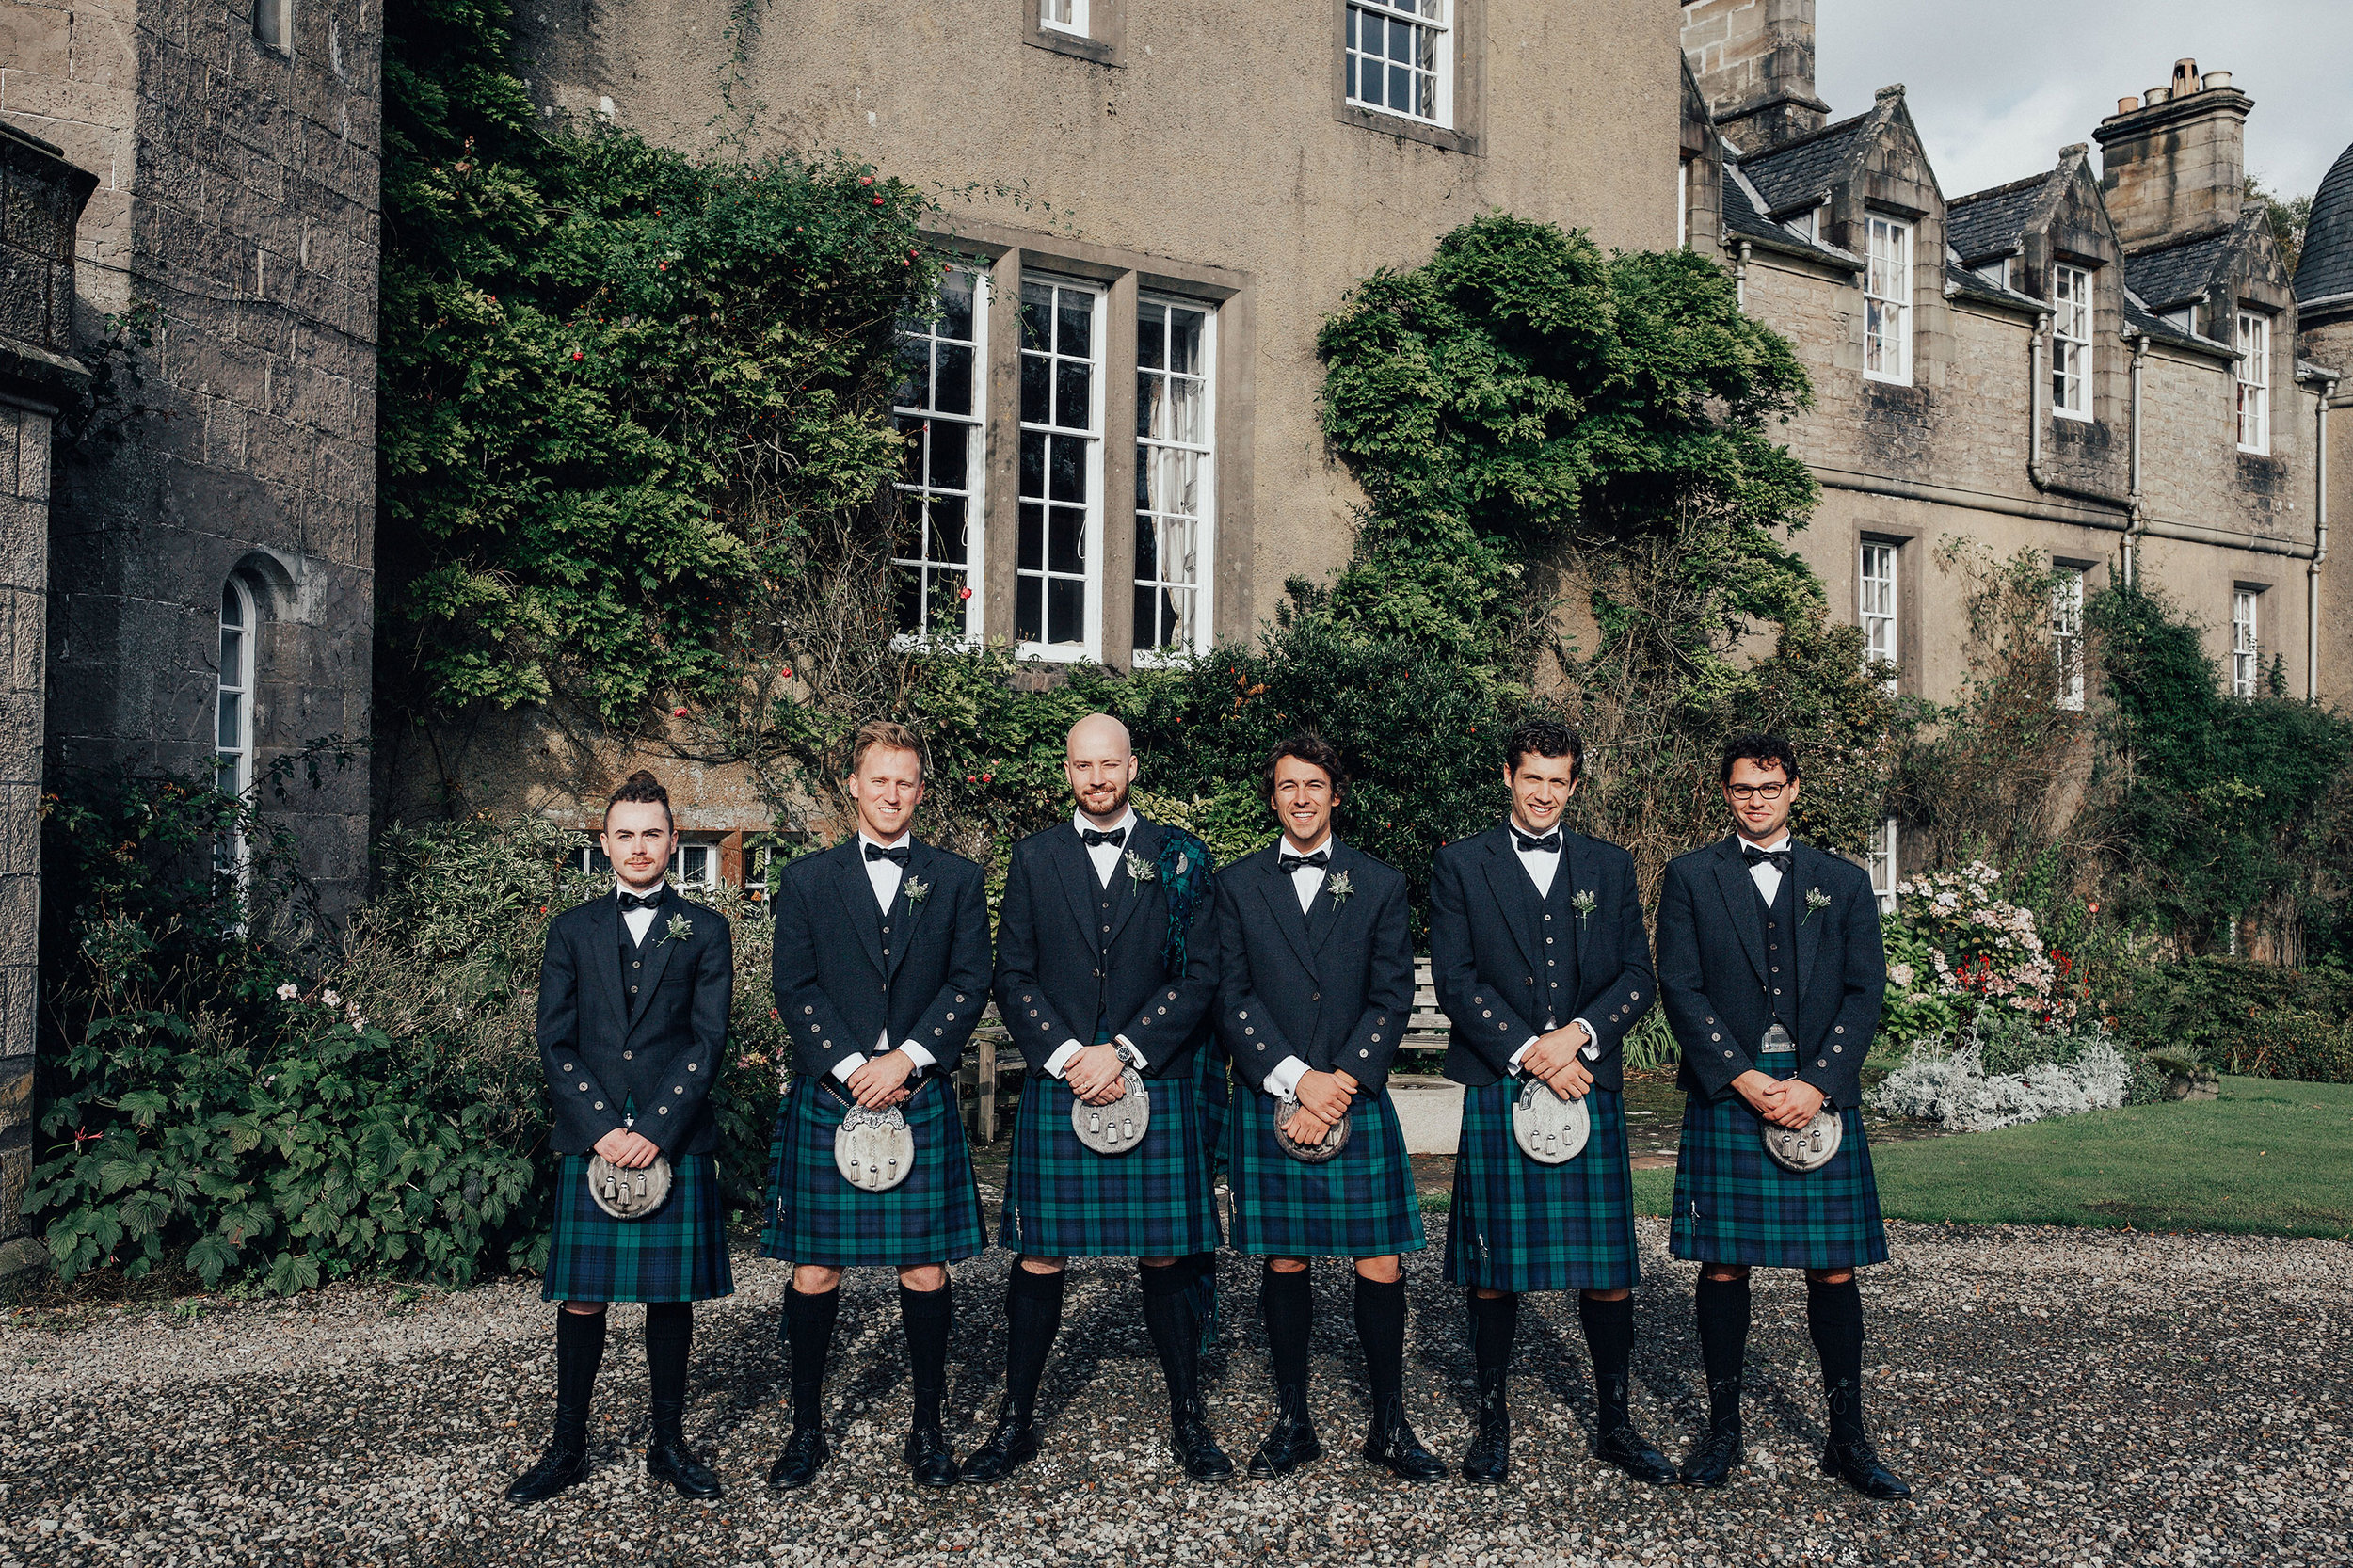 BOTURICH_CASTLE_WEDDING_PHOTOGRAPHER_PJ_PHILLIPS_PHOTOGRAPHY_97.jpg